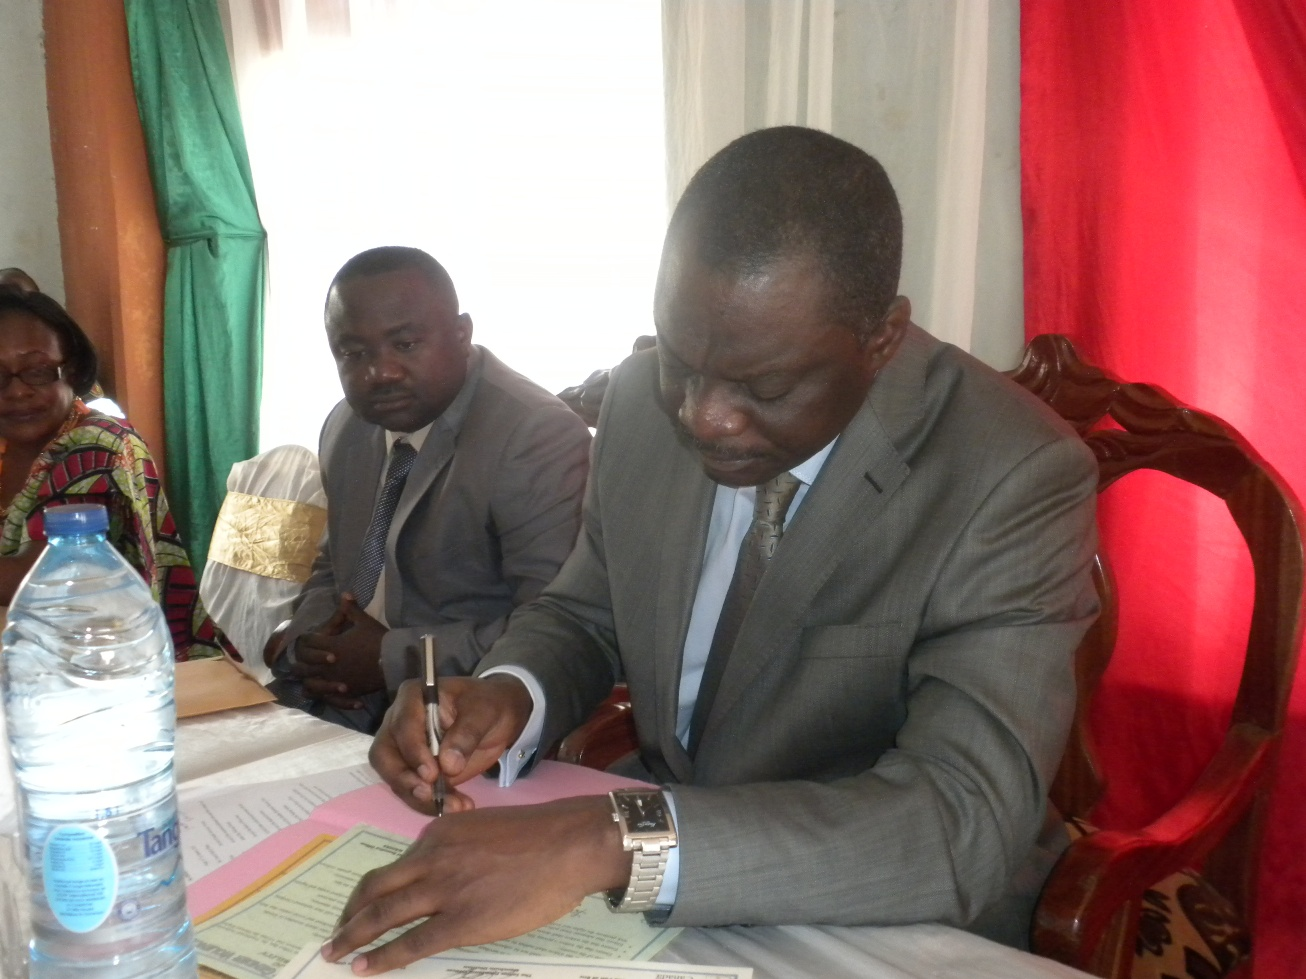 The SDO Signs the Widowhood Rites to Rights Agreement